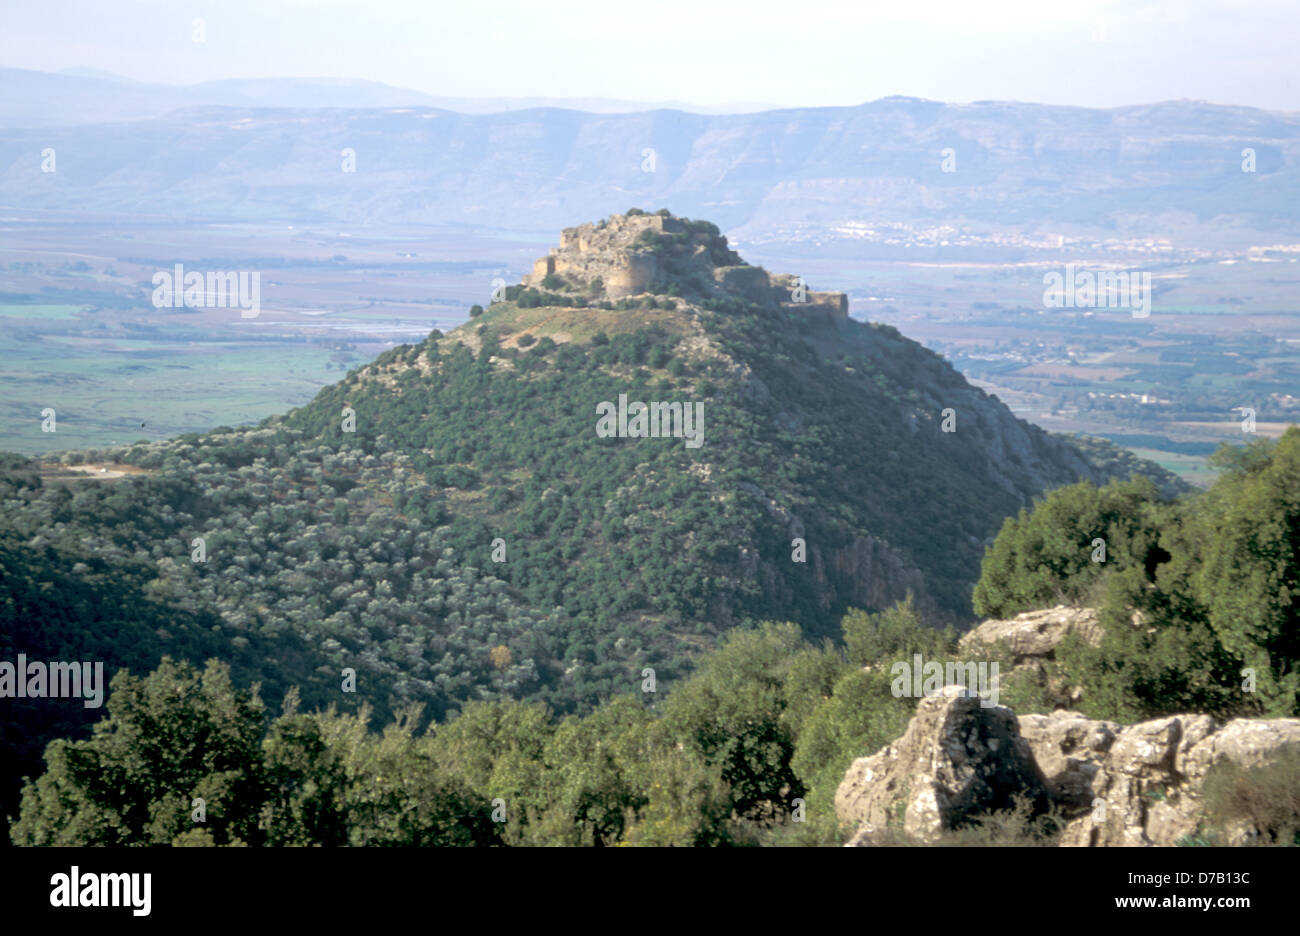 The Crusader Fortress Of Qalat Nimrud In The Golan - Stock Image